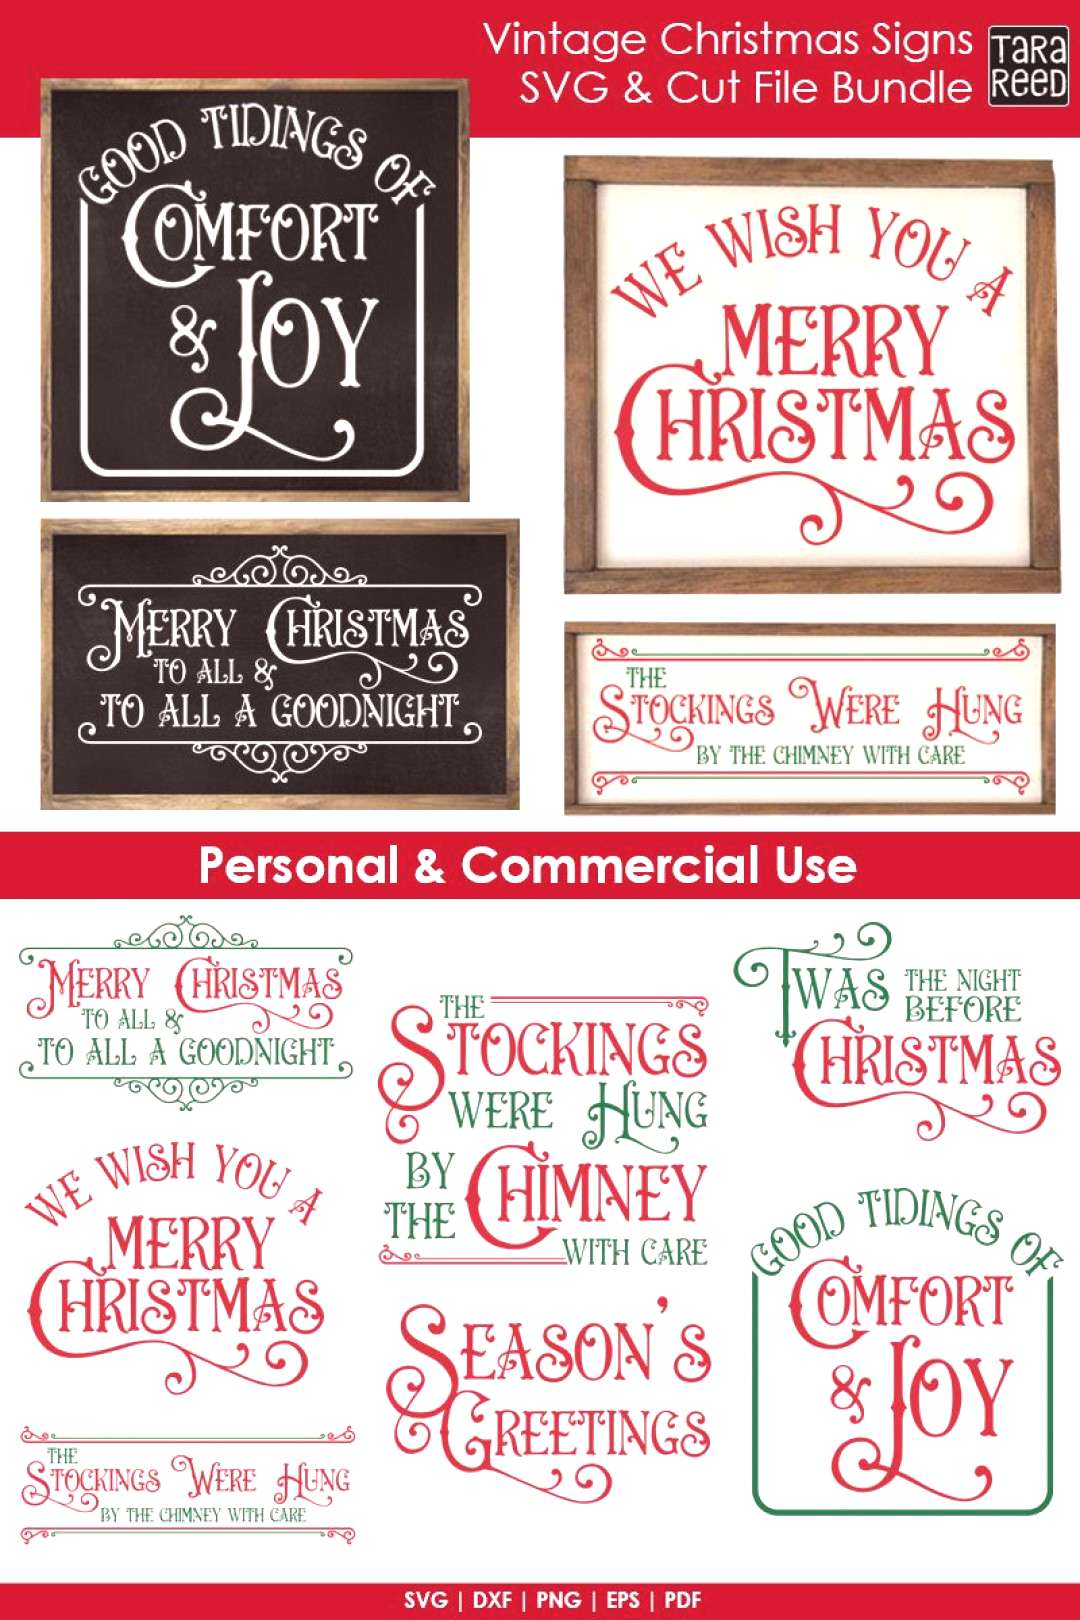 Vintage Christmas Signs - Christmas SVG and Cut Files for Crafters [Promotion] Looking for traditio